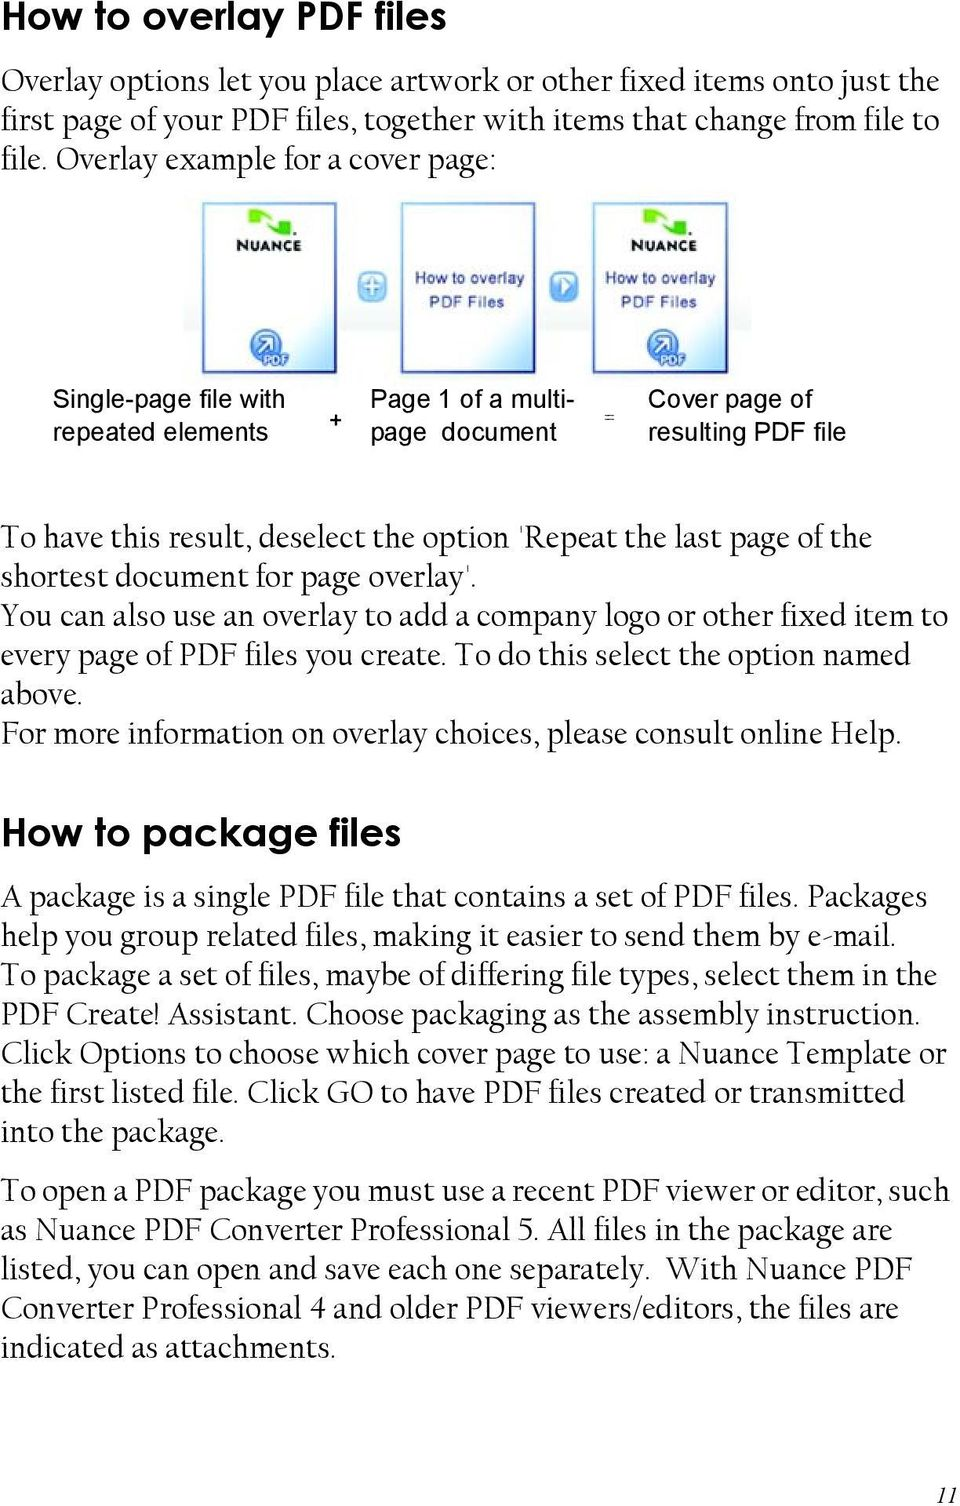 page of the shortest document for page overlay'. You can also use an overlay to add a company logo or other fixed item to every page of PDF files you create. To do this select the option named above.